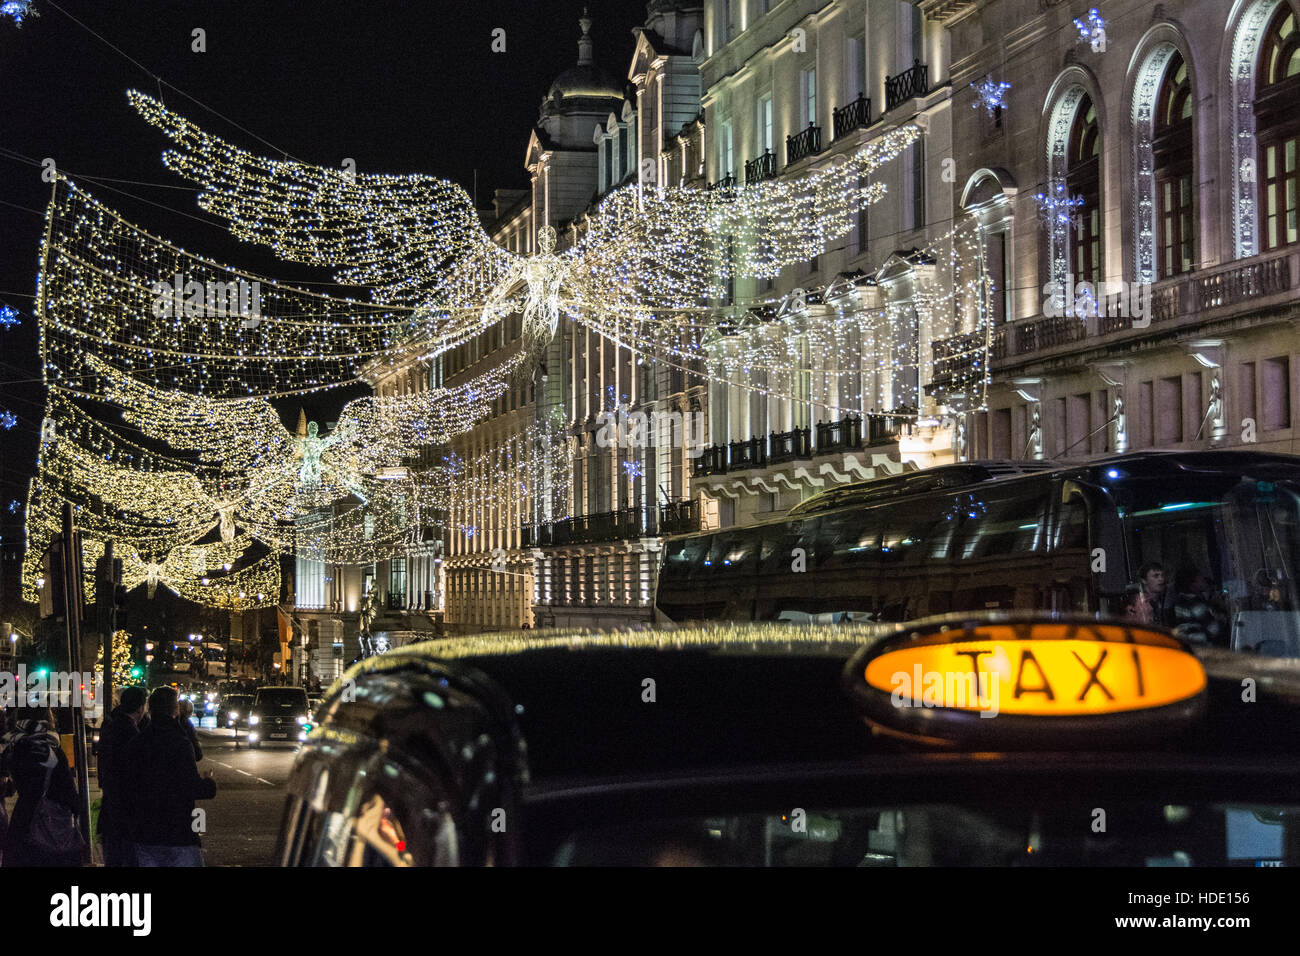 Christmas lights in London's West End, UK - Stock Image